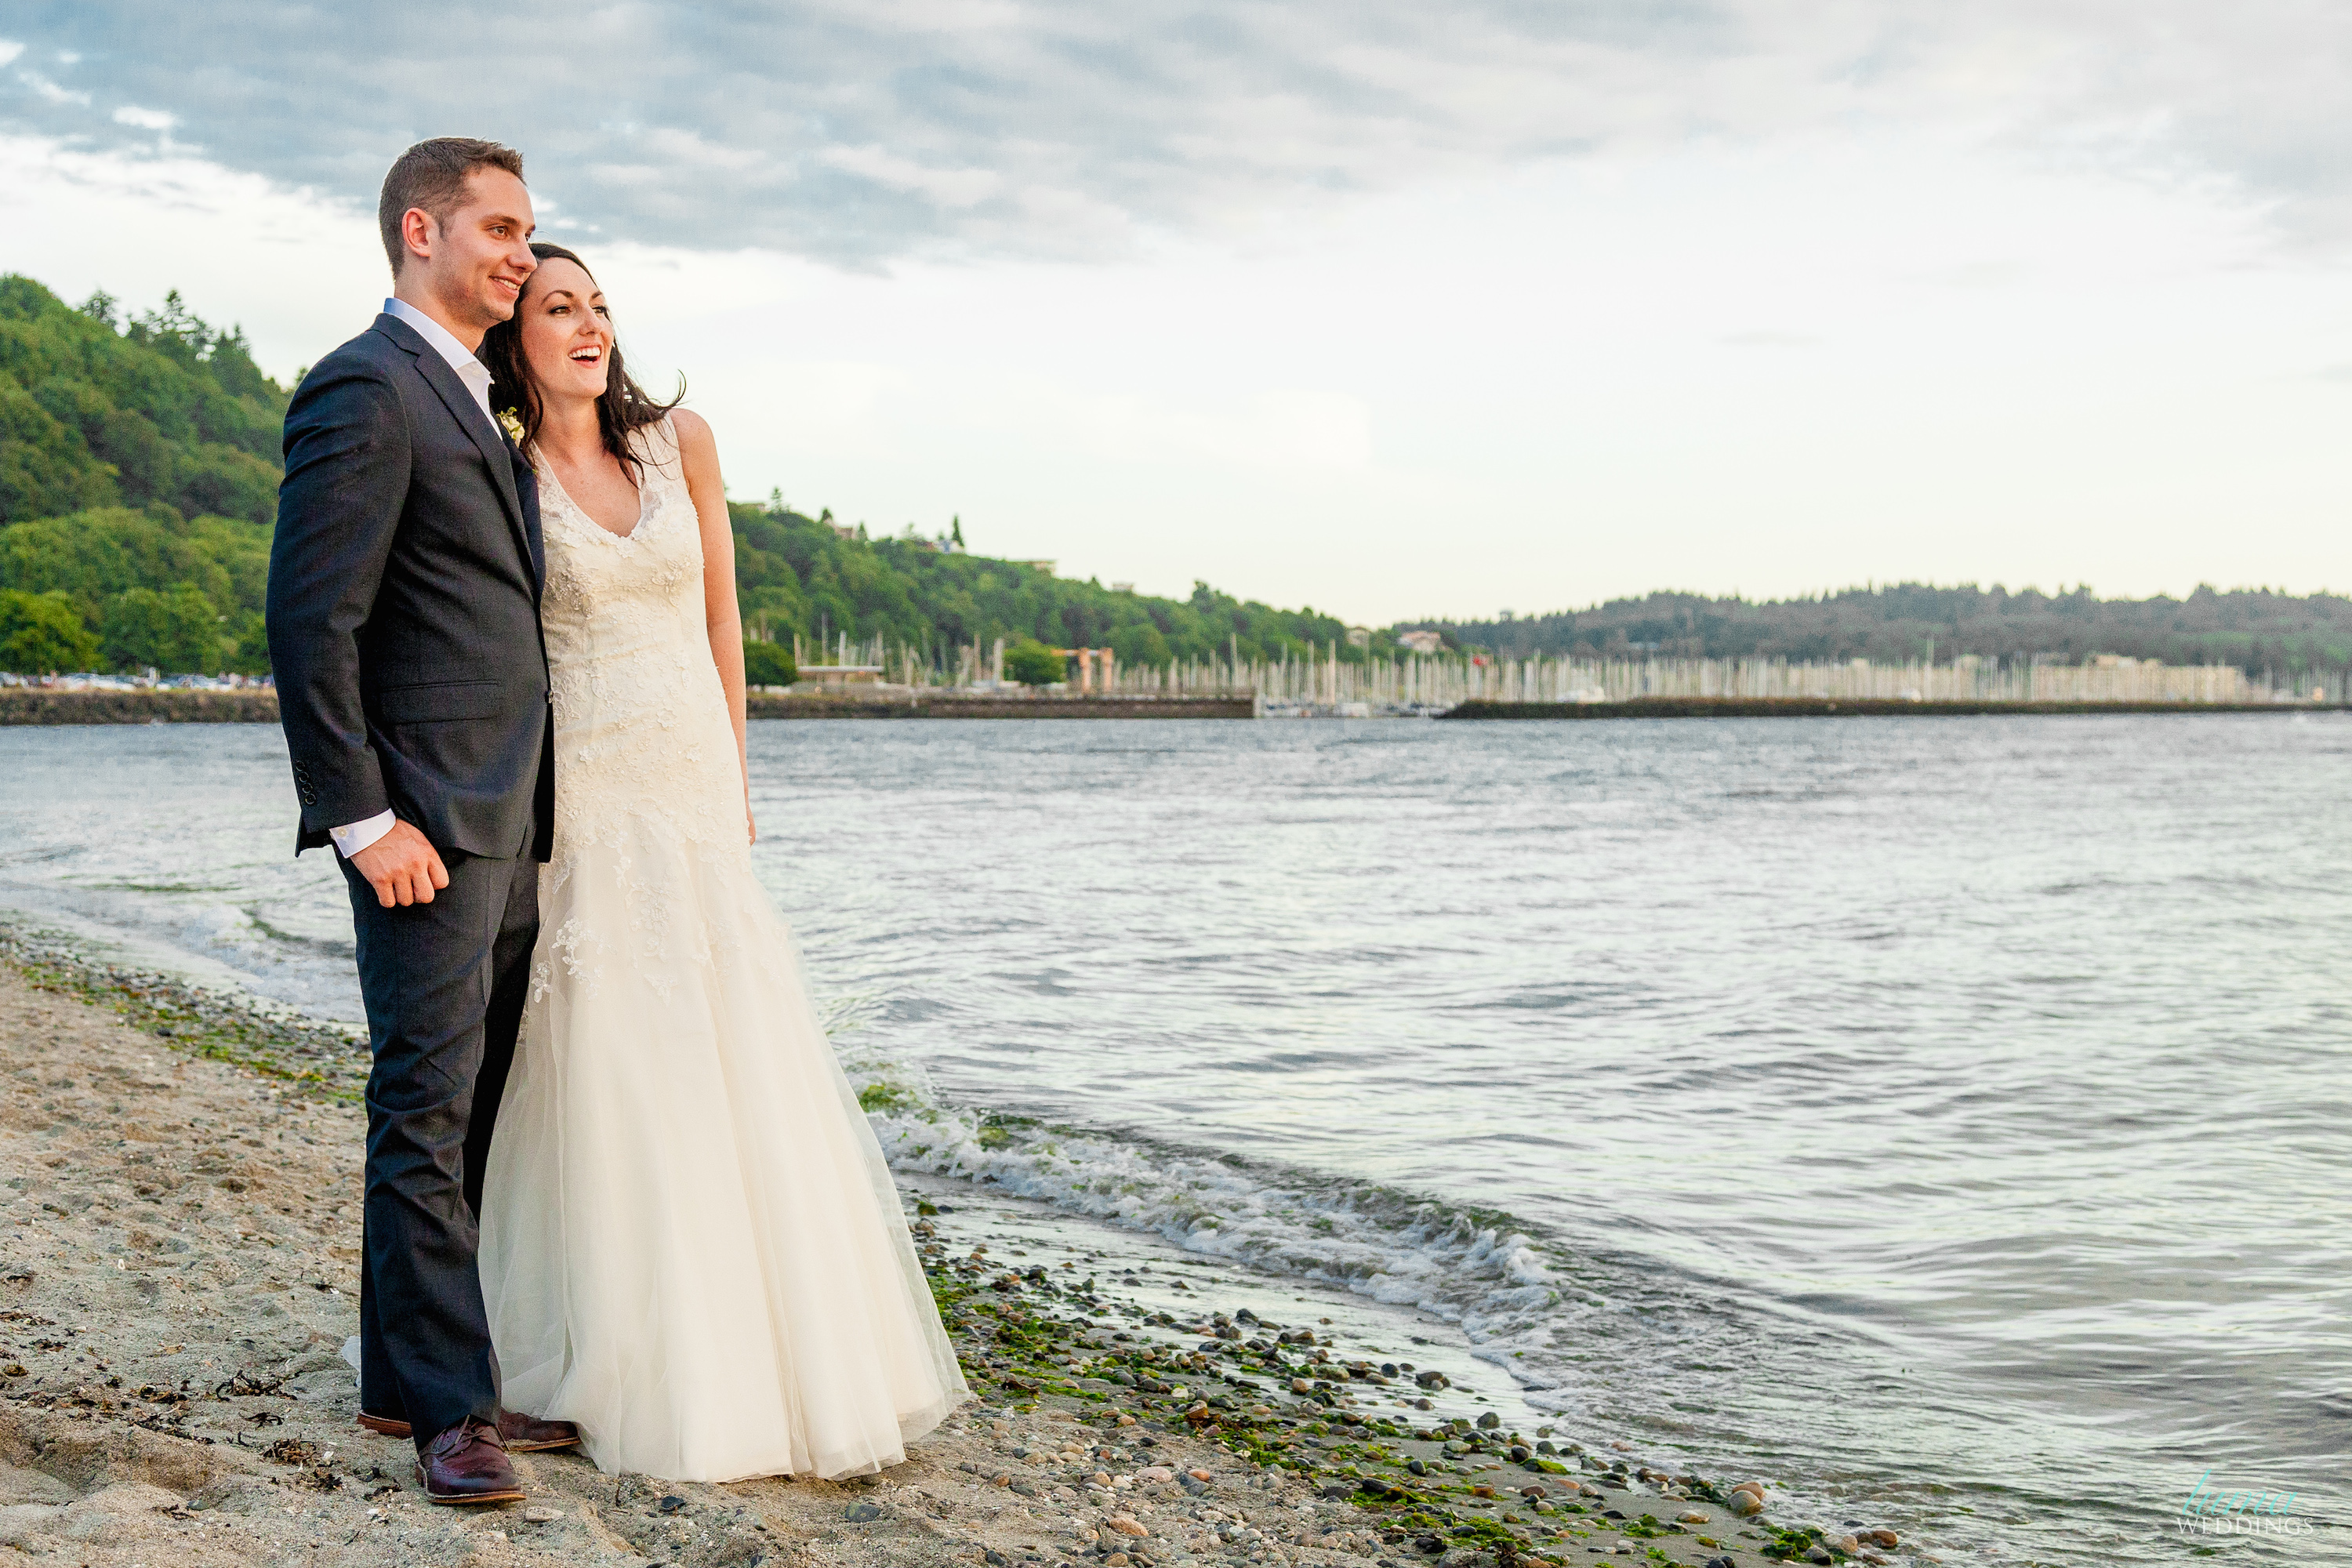 Rustic Jewish Beach Wedding {Seattle, WA} | The Big Fat Jewish Wedding